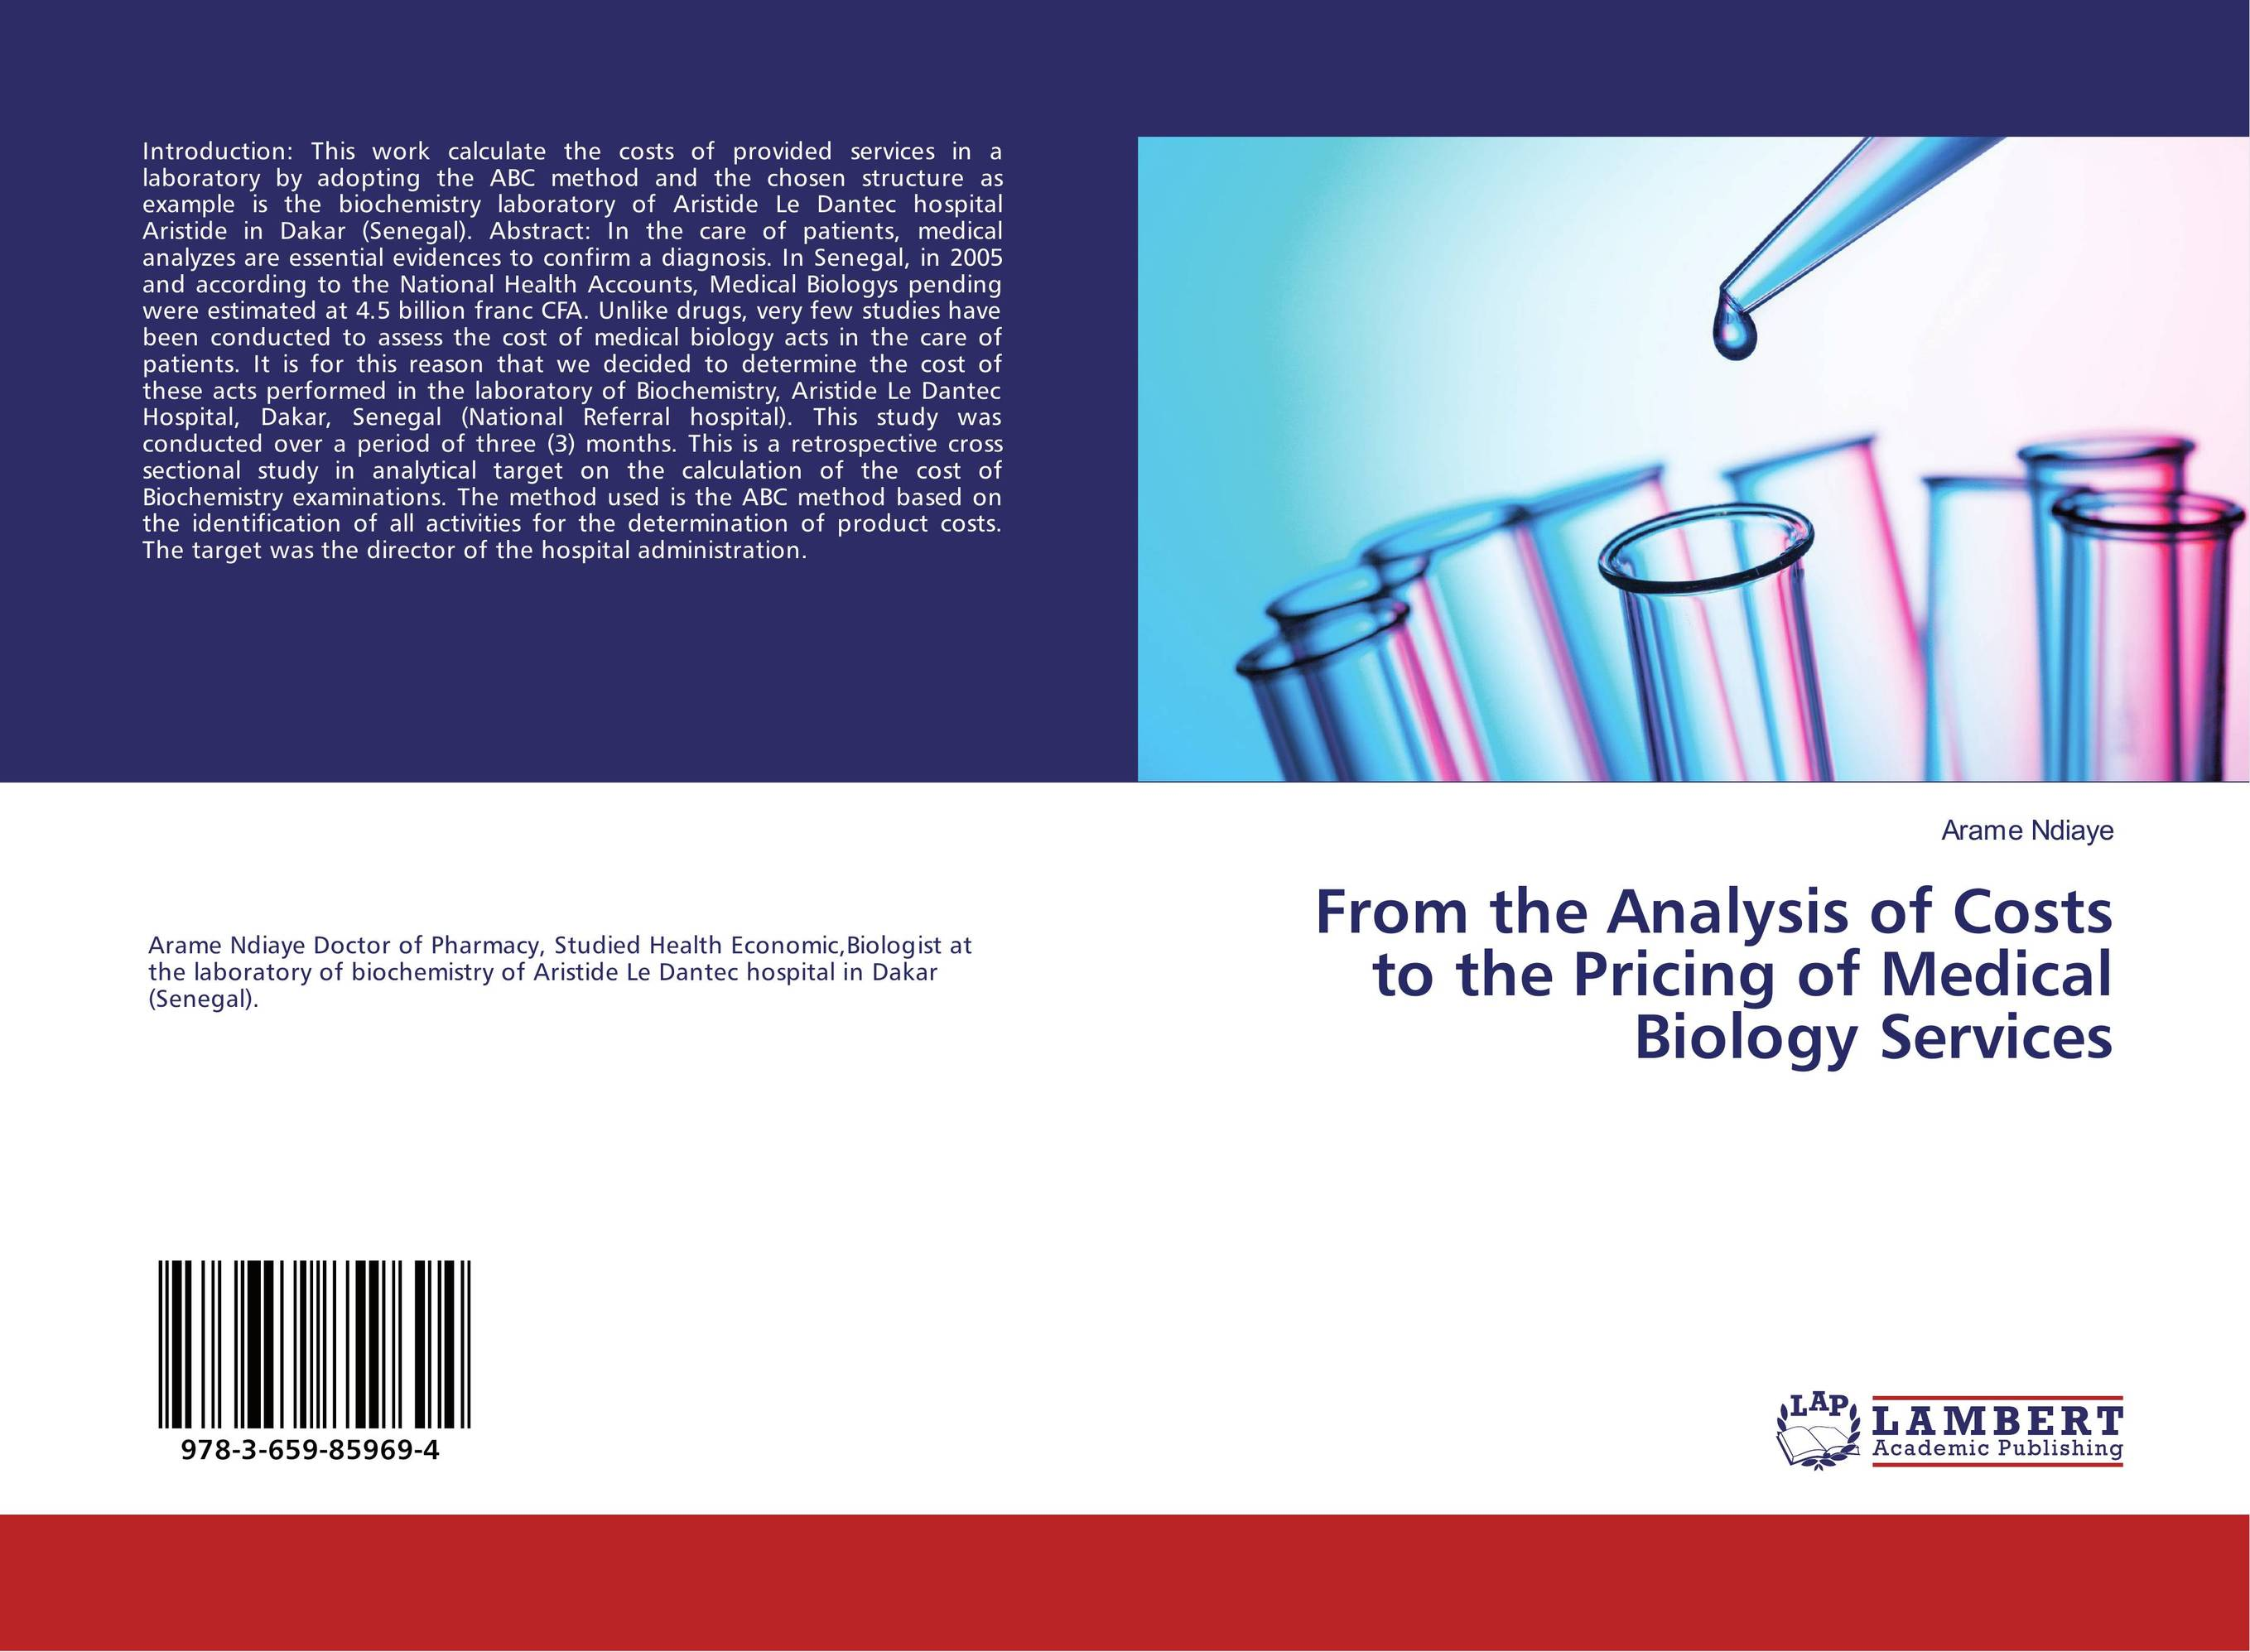 From the Analysis of Costs to the Pricing of Medical Biology Services